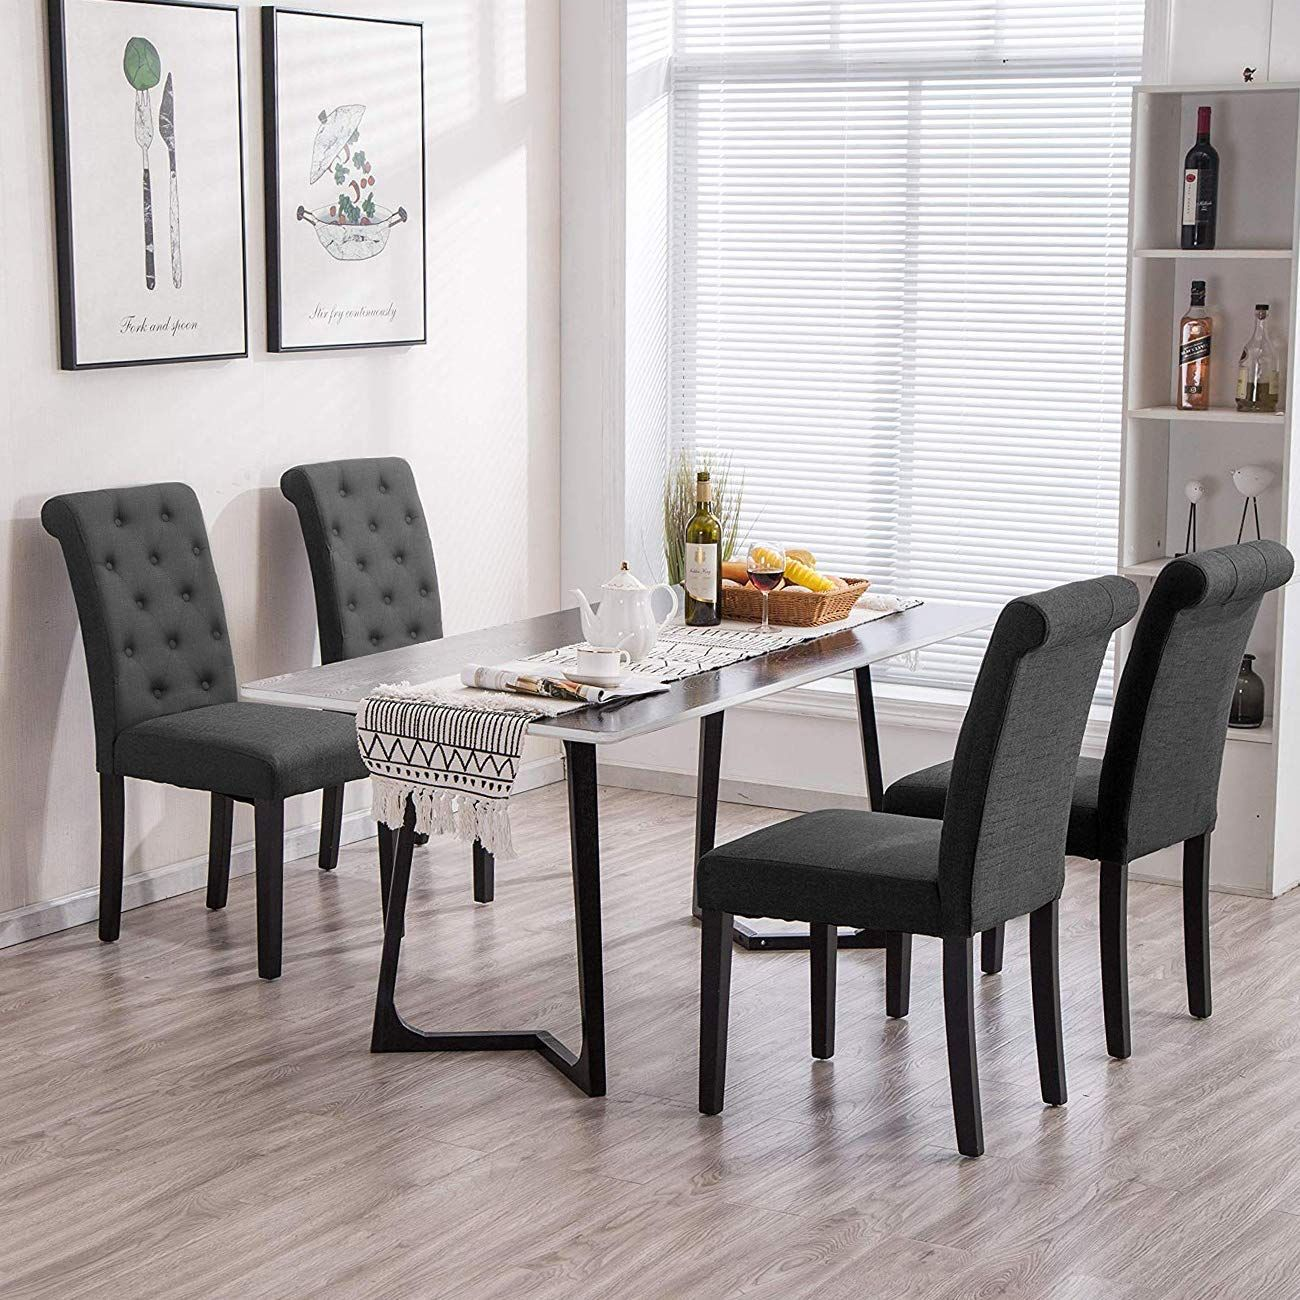 HomeSailing Taupe Dining Chair Set of 8 for Kitchen Restaurant